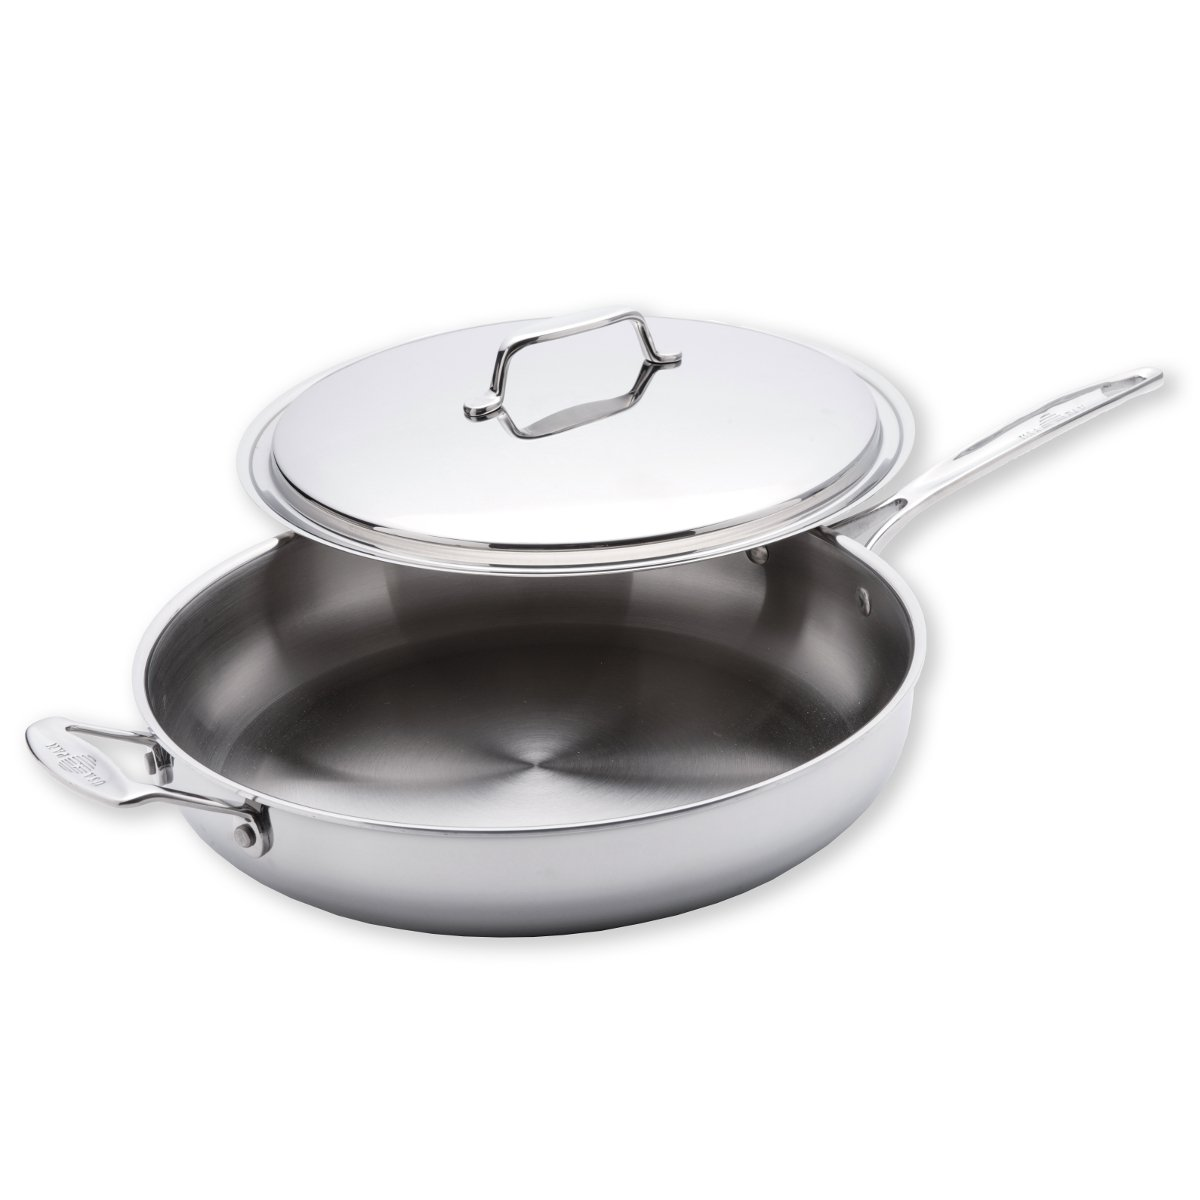 USA Pan Cookware 5-Ply Stainless Steel 13 Inch Gourmet Chef Skillet With Cover, Oven and Dishwasher Safe, Made in the USA